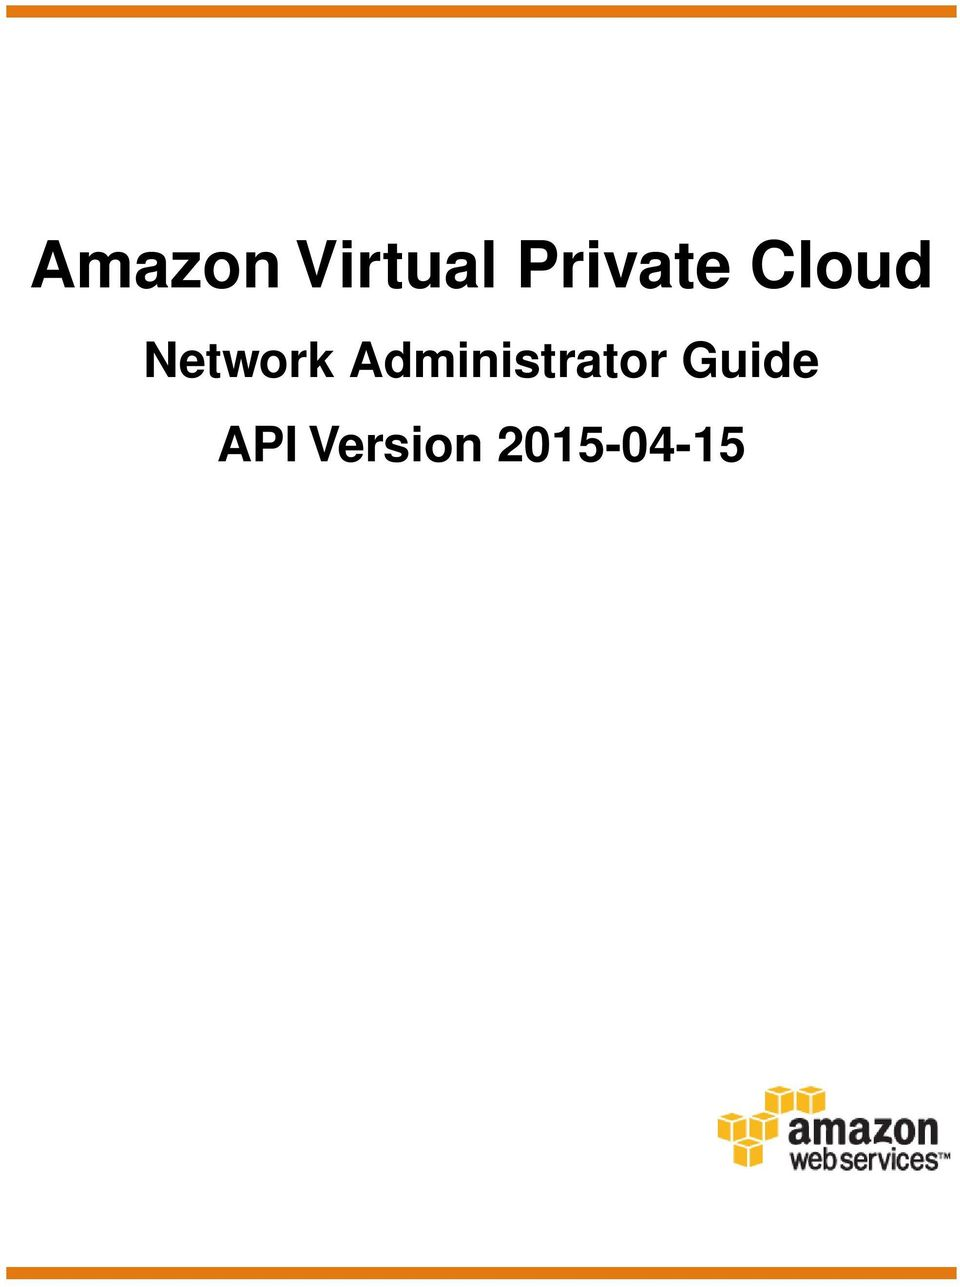 medium resolution of 2 amazon virtual private cloud network administrator copyright 2015 amazon web services inc and or its affiliates all rights reserved